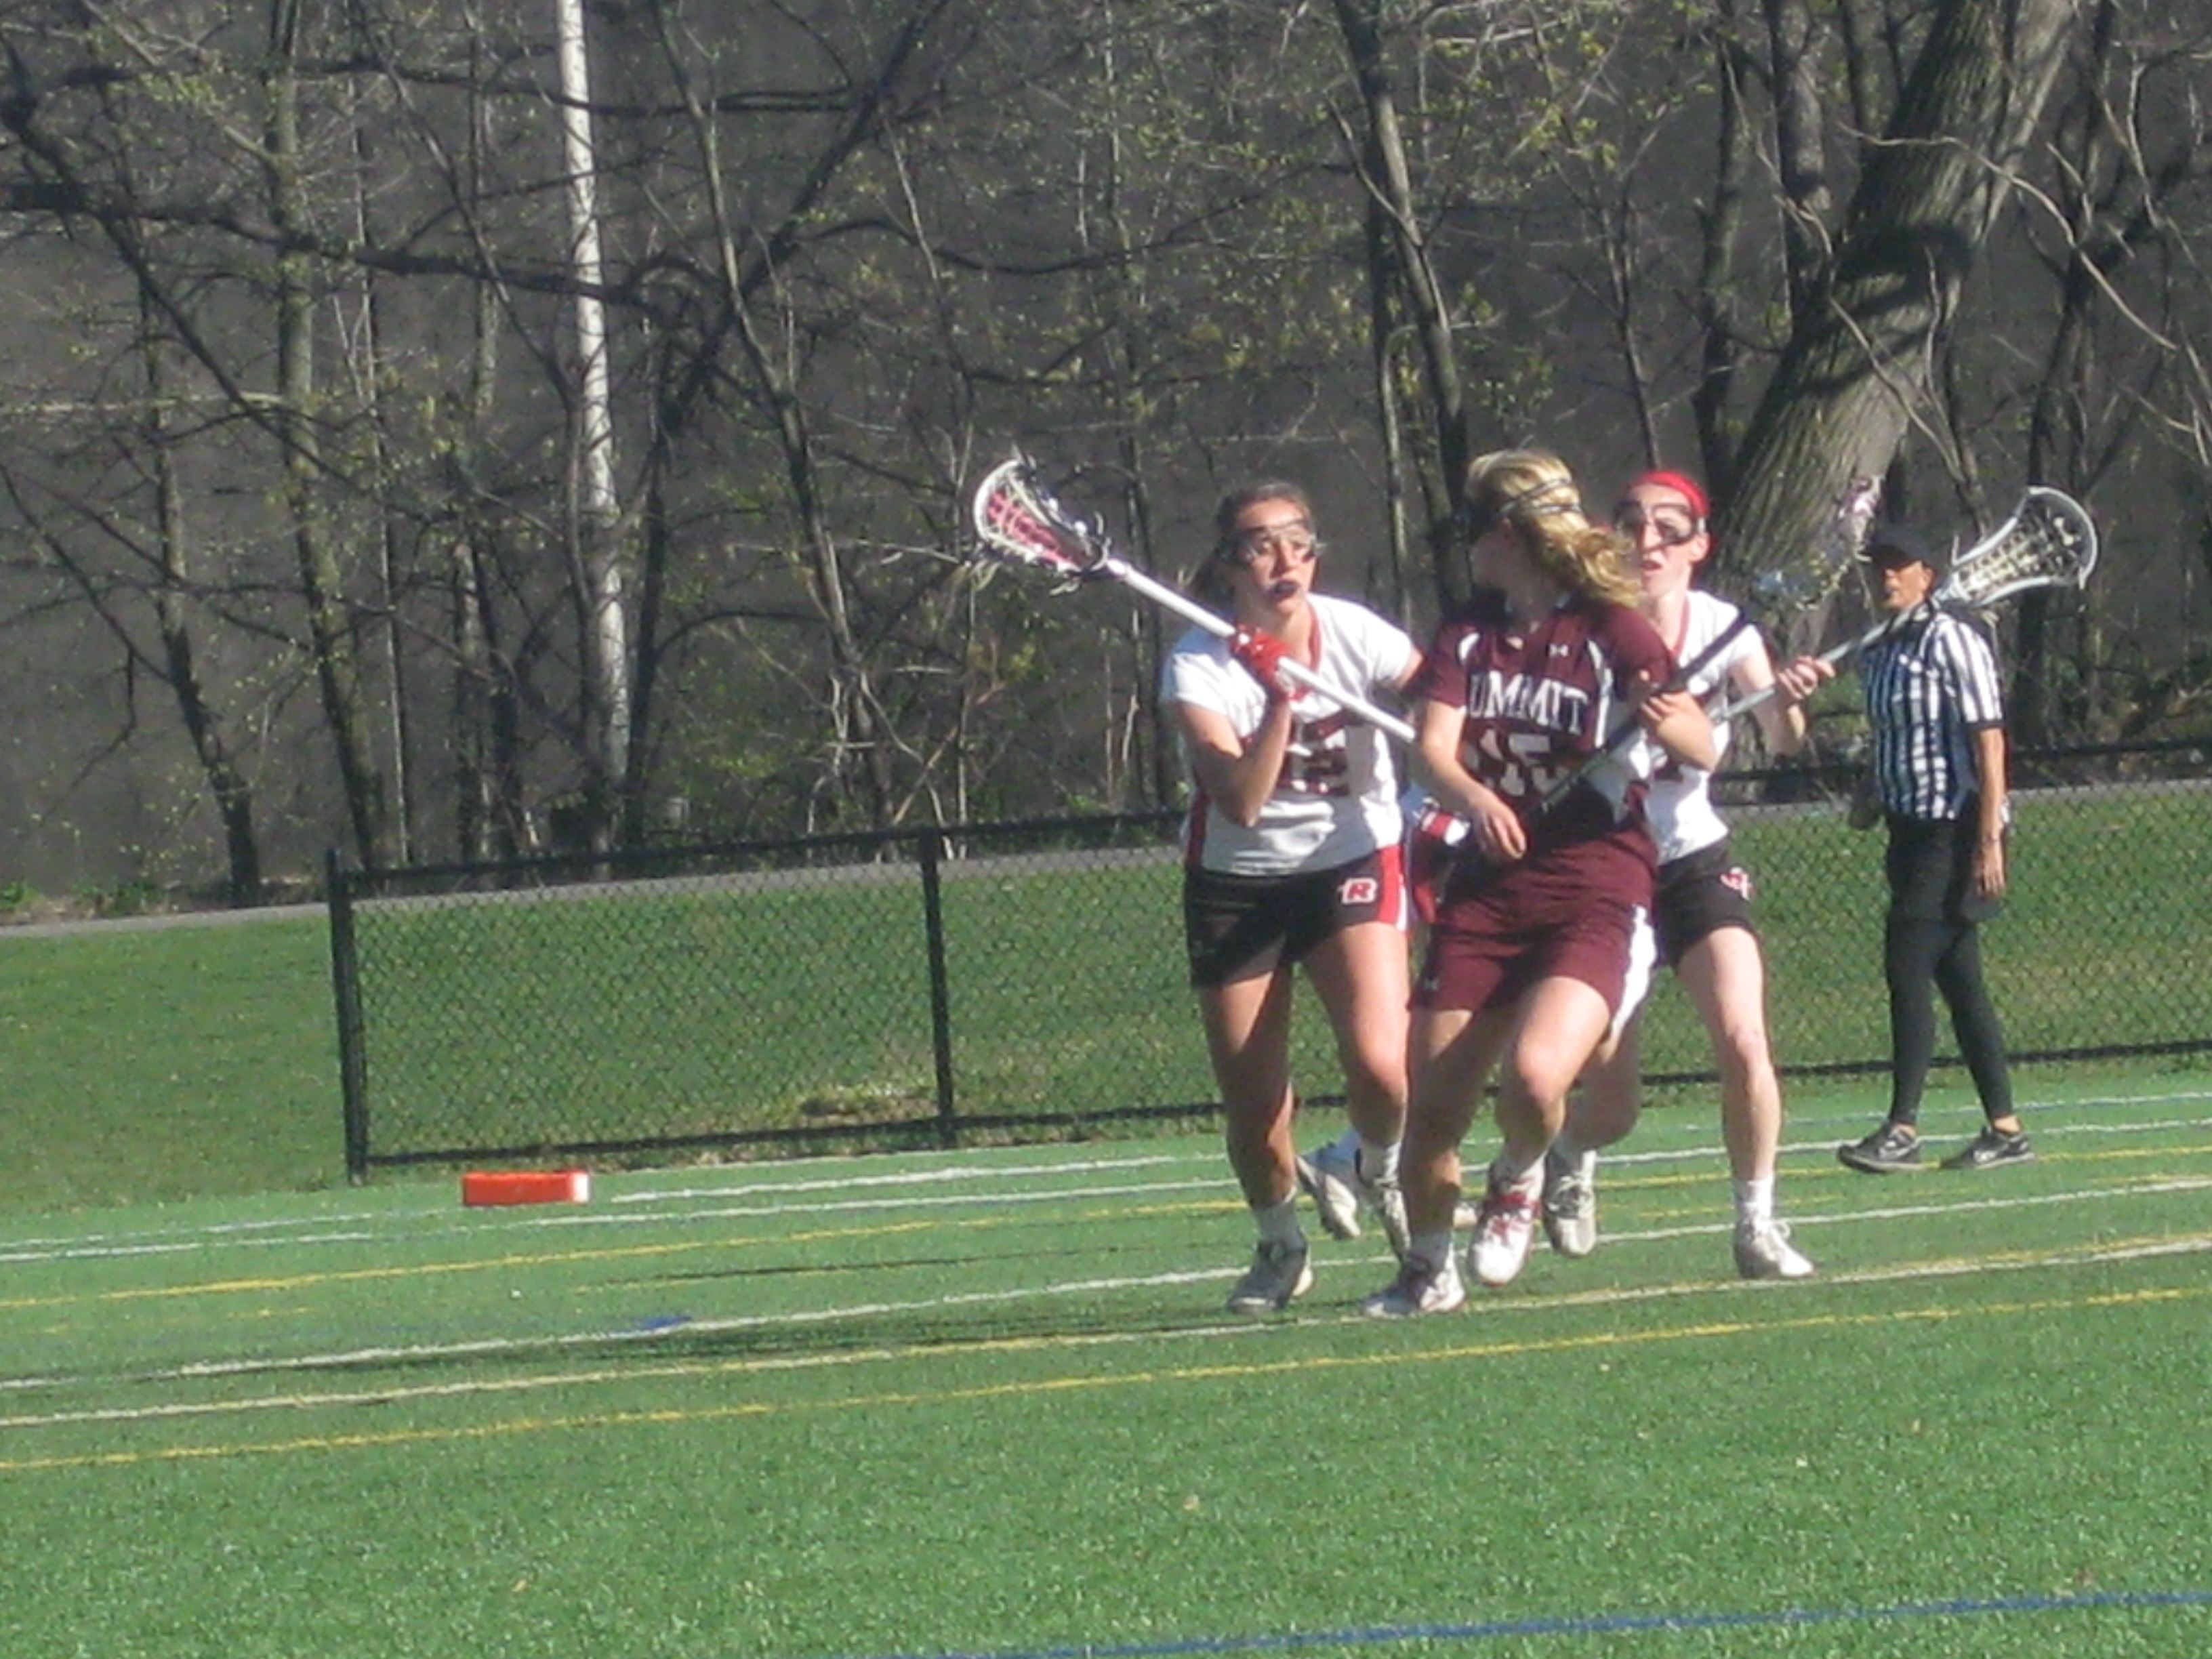 6f902f6af60e73860b4b_summit_girls_lax_011.jpg